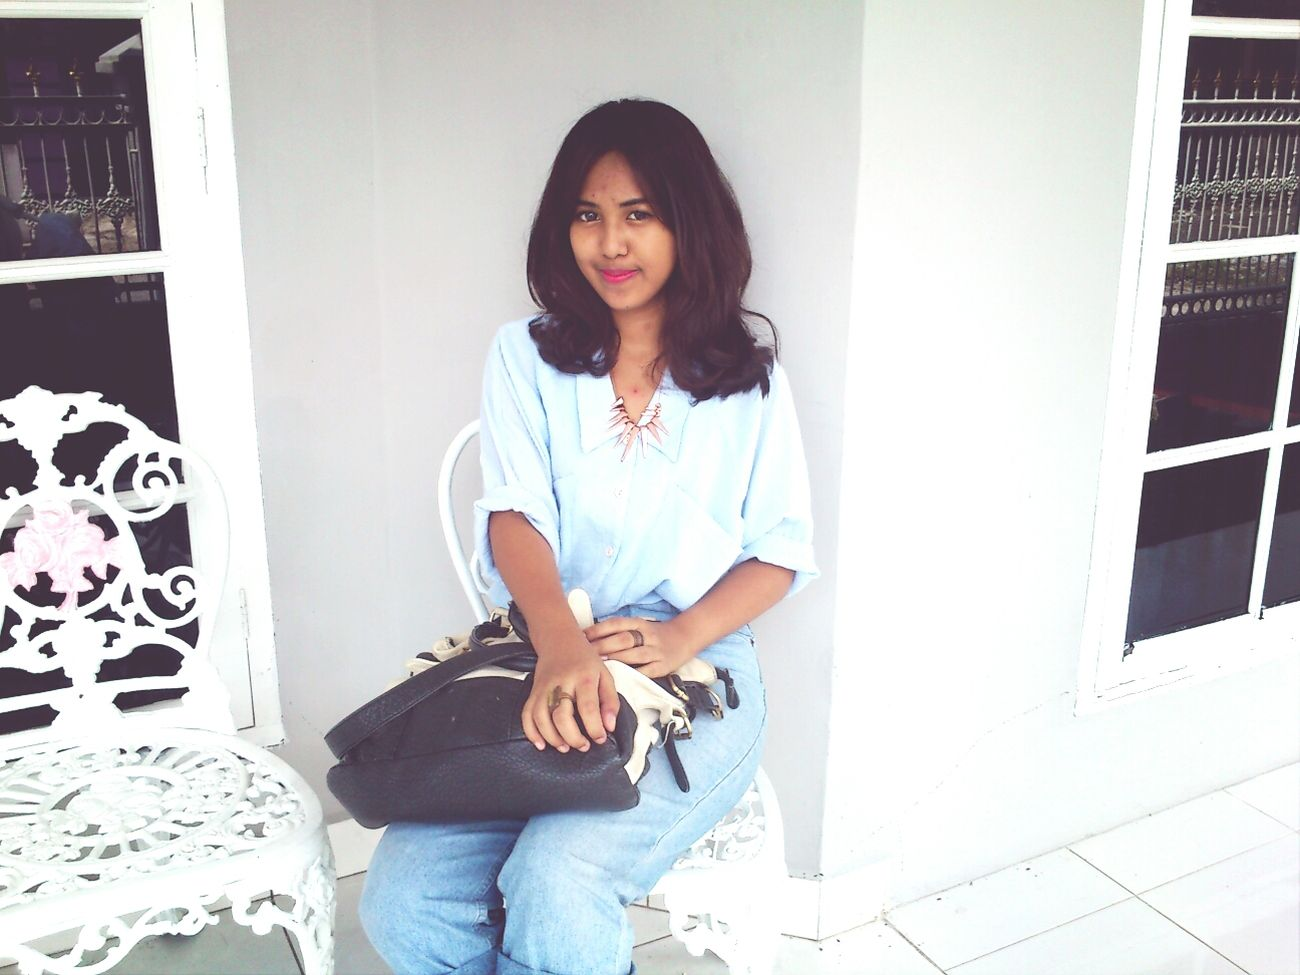 Denim kind of the day. Feelingblue